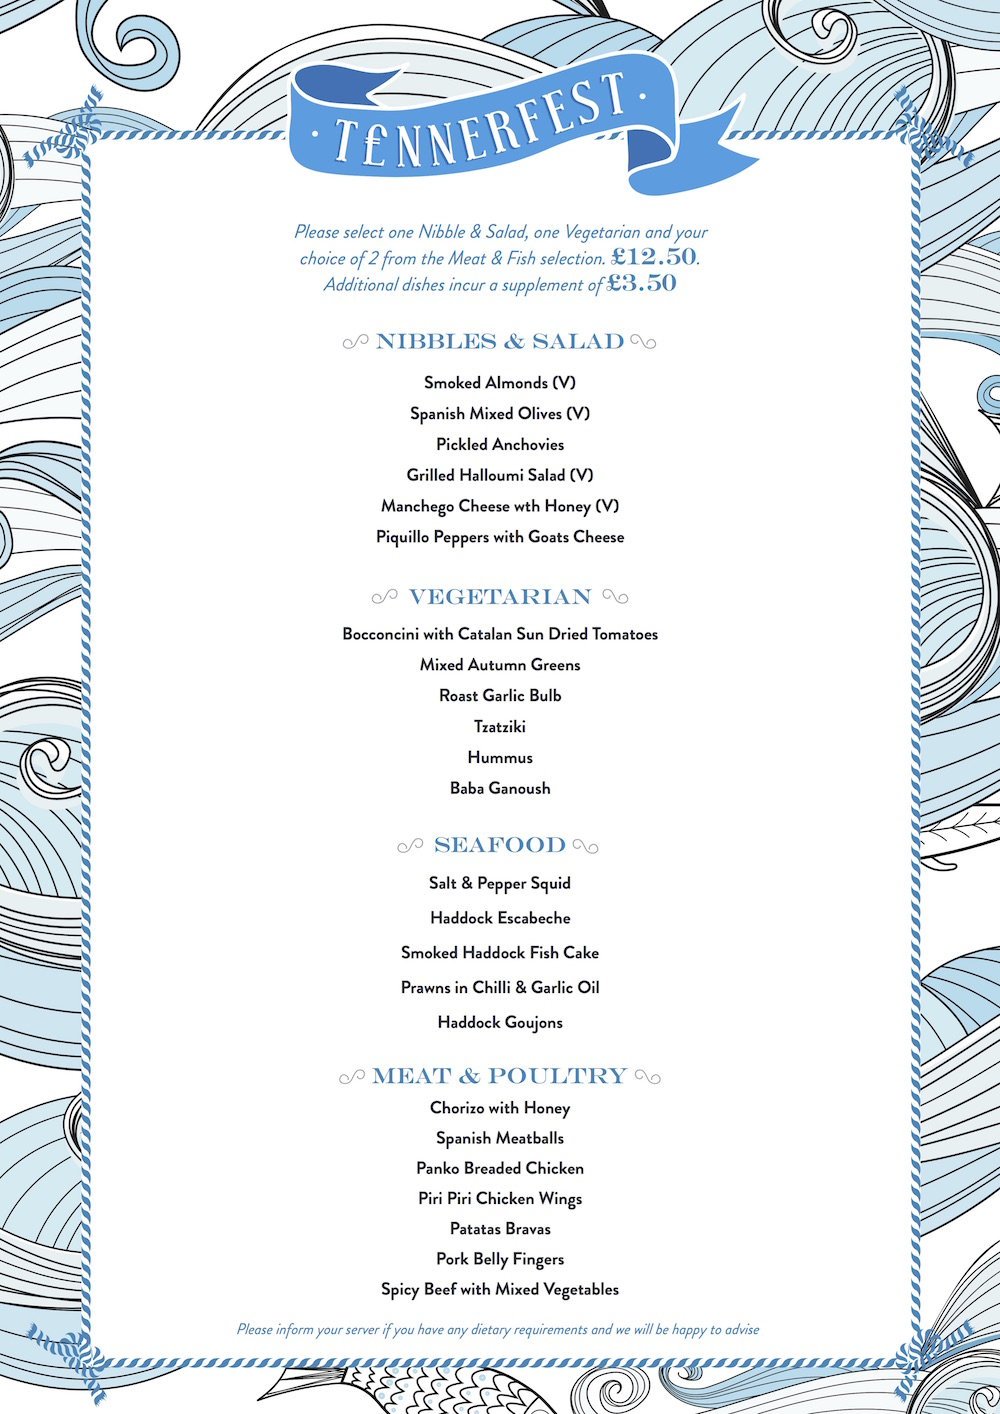 Deck house menu